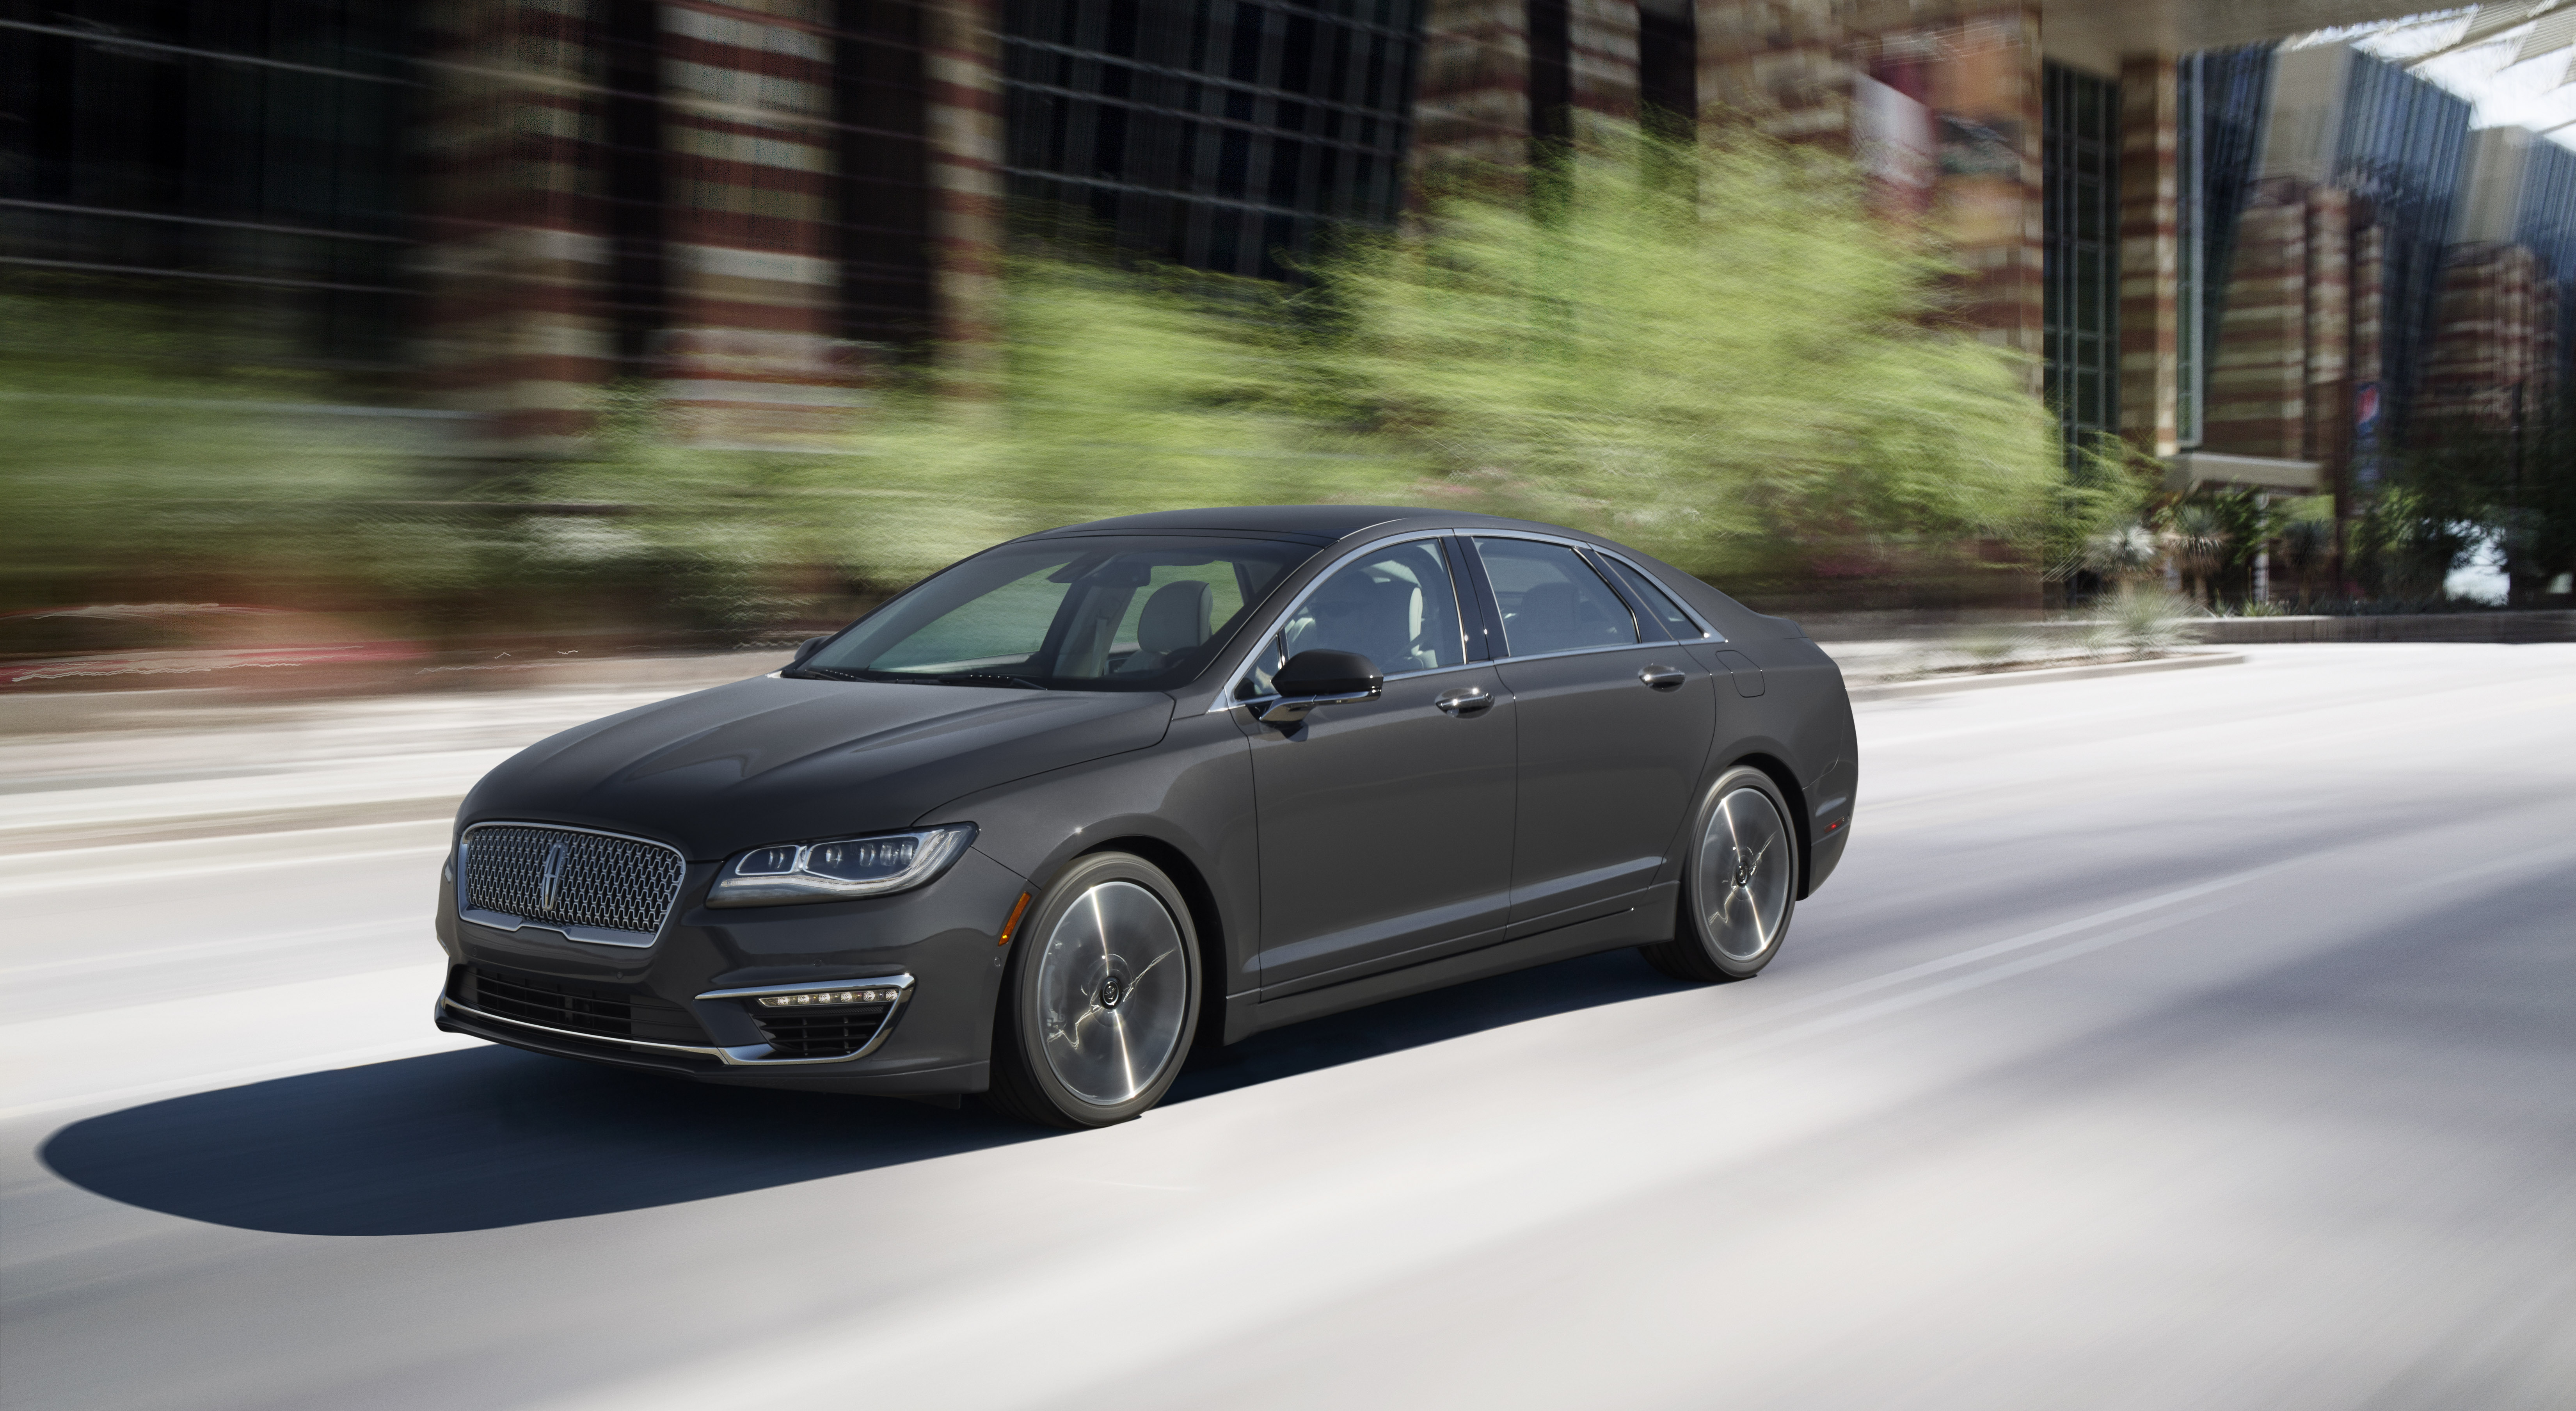 Top 10 most affordable luxury cars autospies auto news -  Laas2015 You A Fan Now Lincoln Restyles 2017 Mkz And Adds 400hp V8 To Line Up